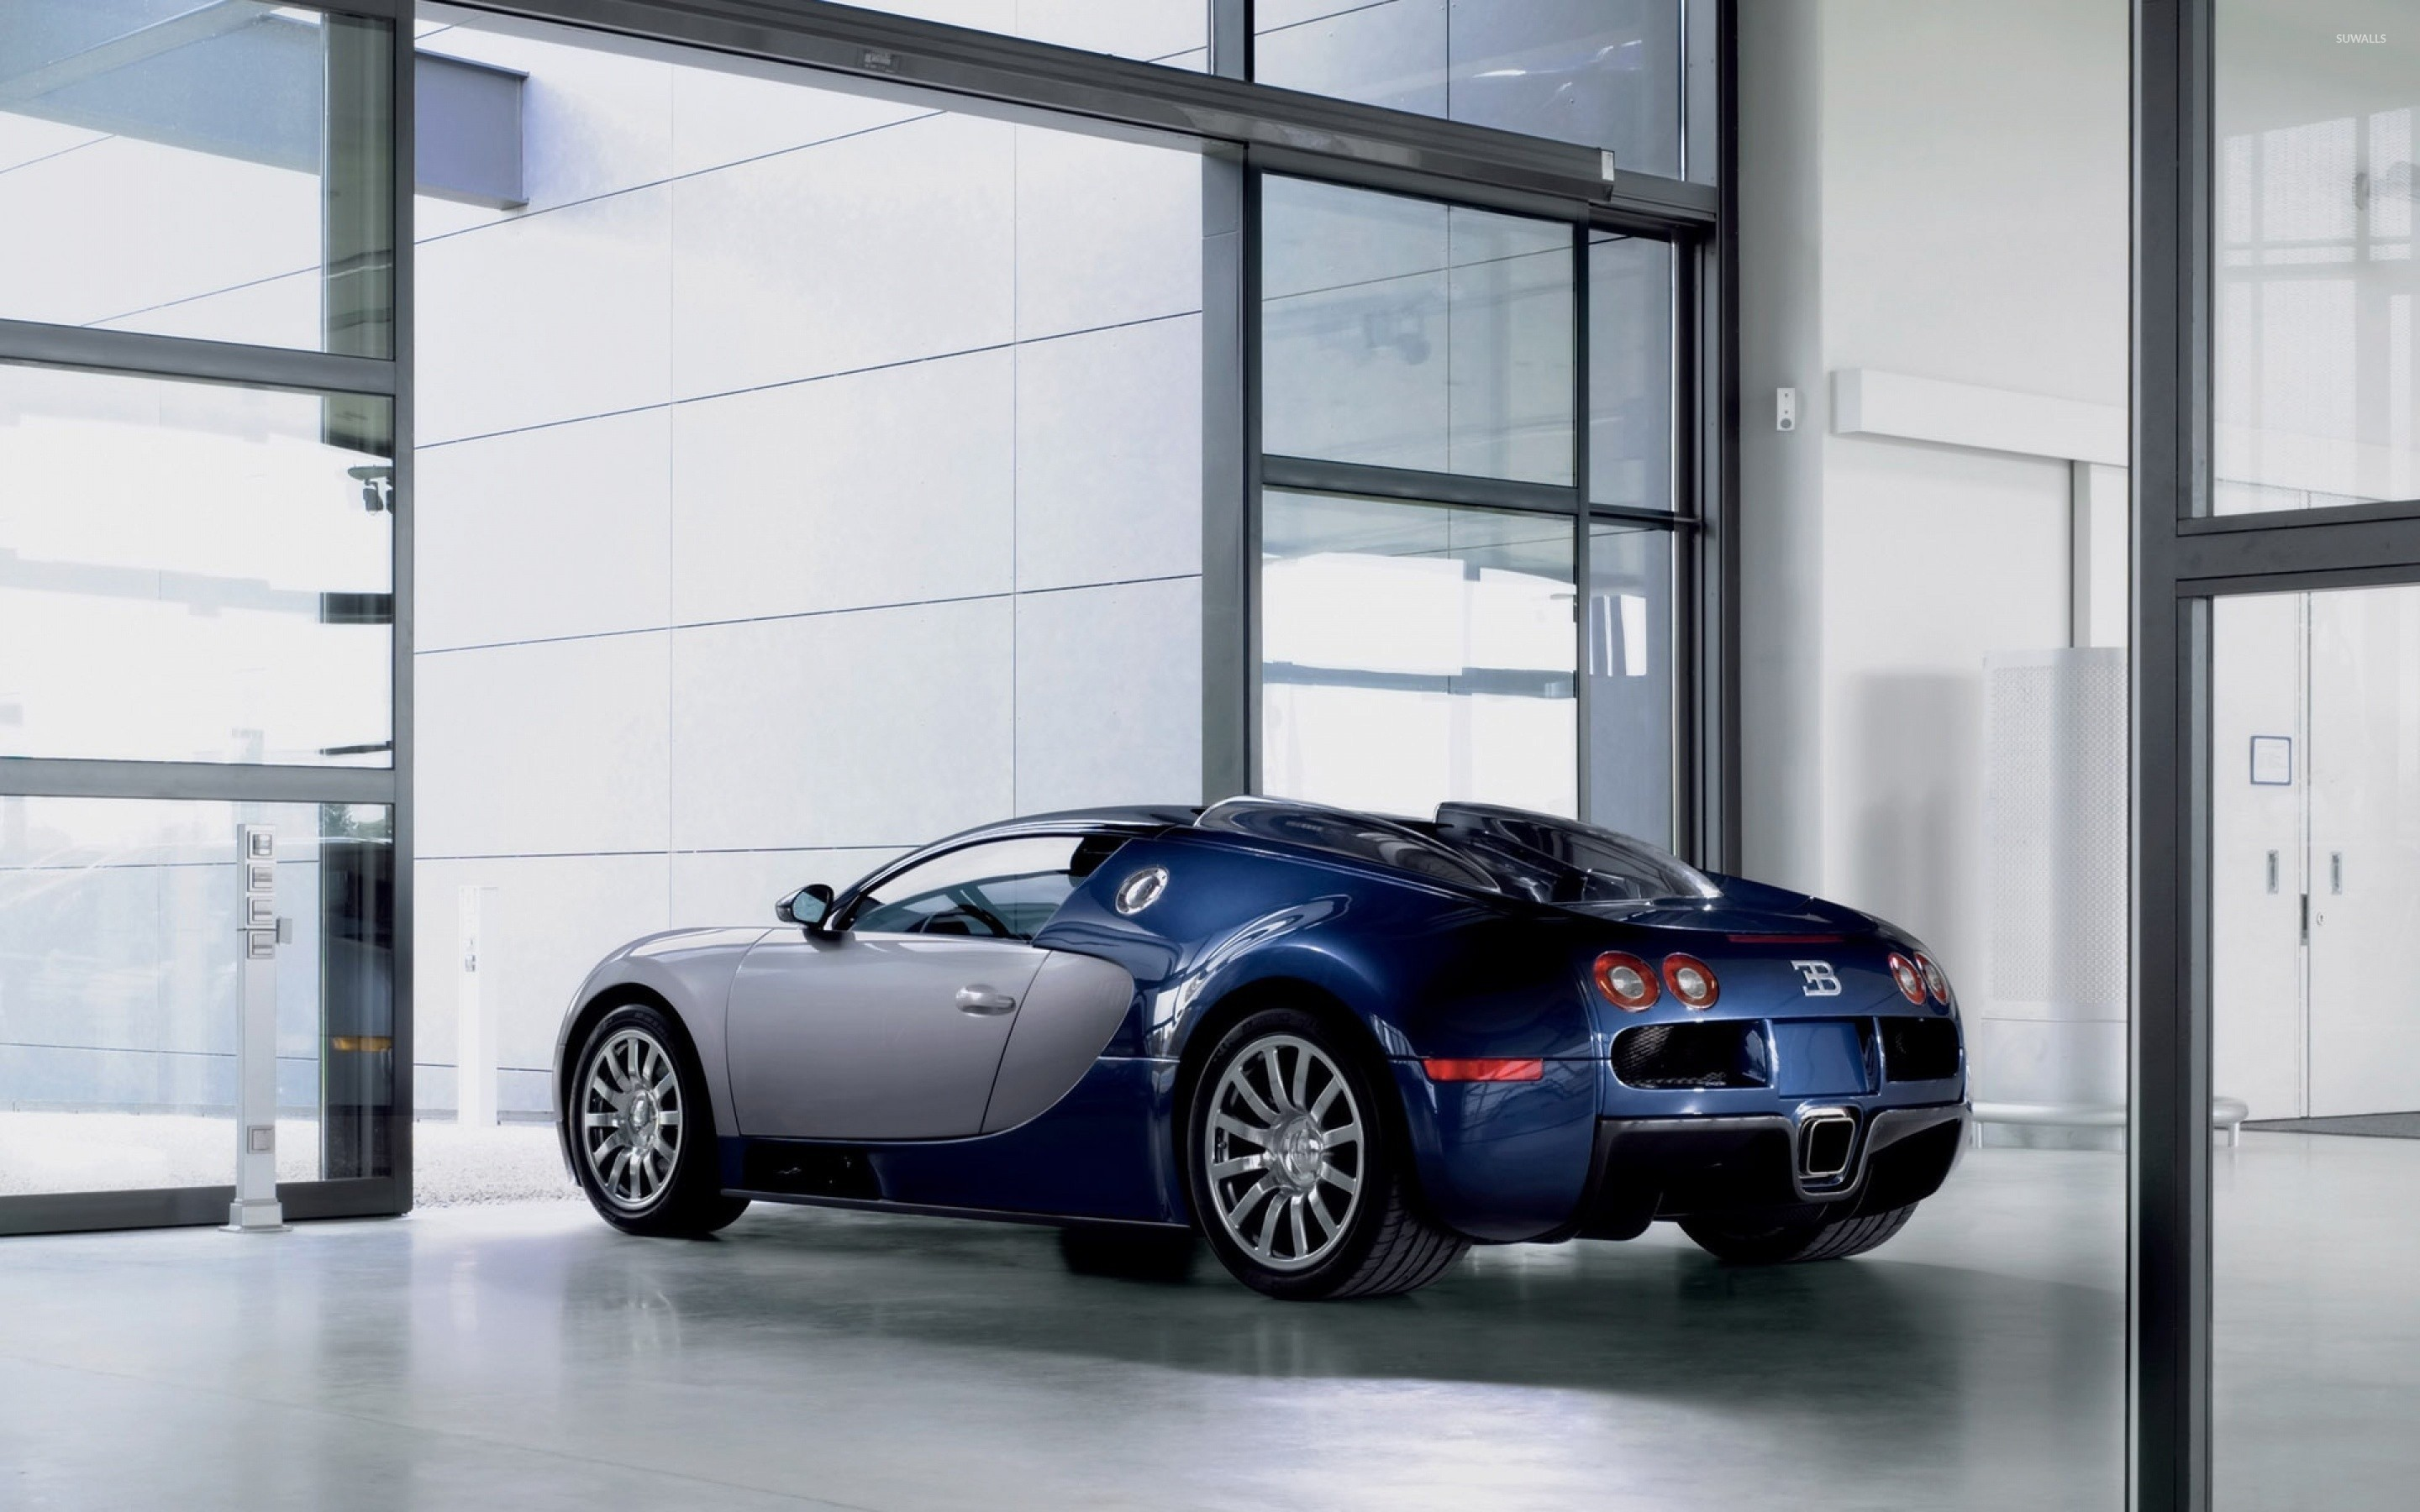 Bugatti Veyron In A Showroom Wallpaper Car Wallpapers 50105